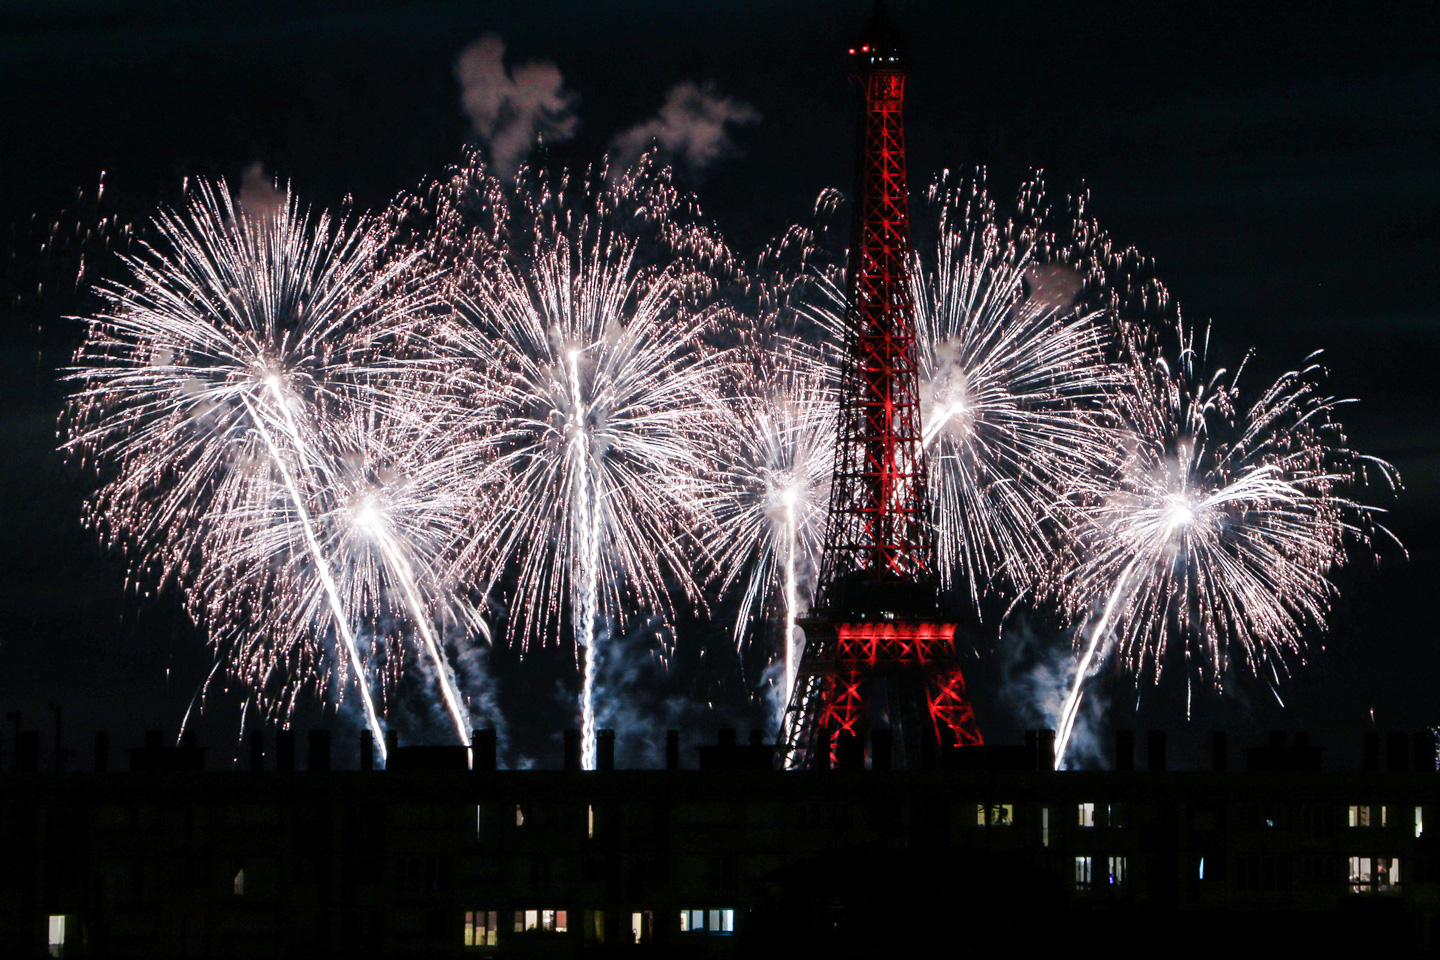 French Photographer Paris France Landscape Photography Eiffel Tower Lit Up Red and fireworks for Bastille day